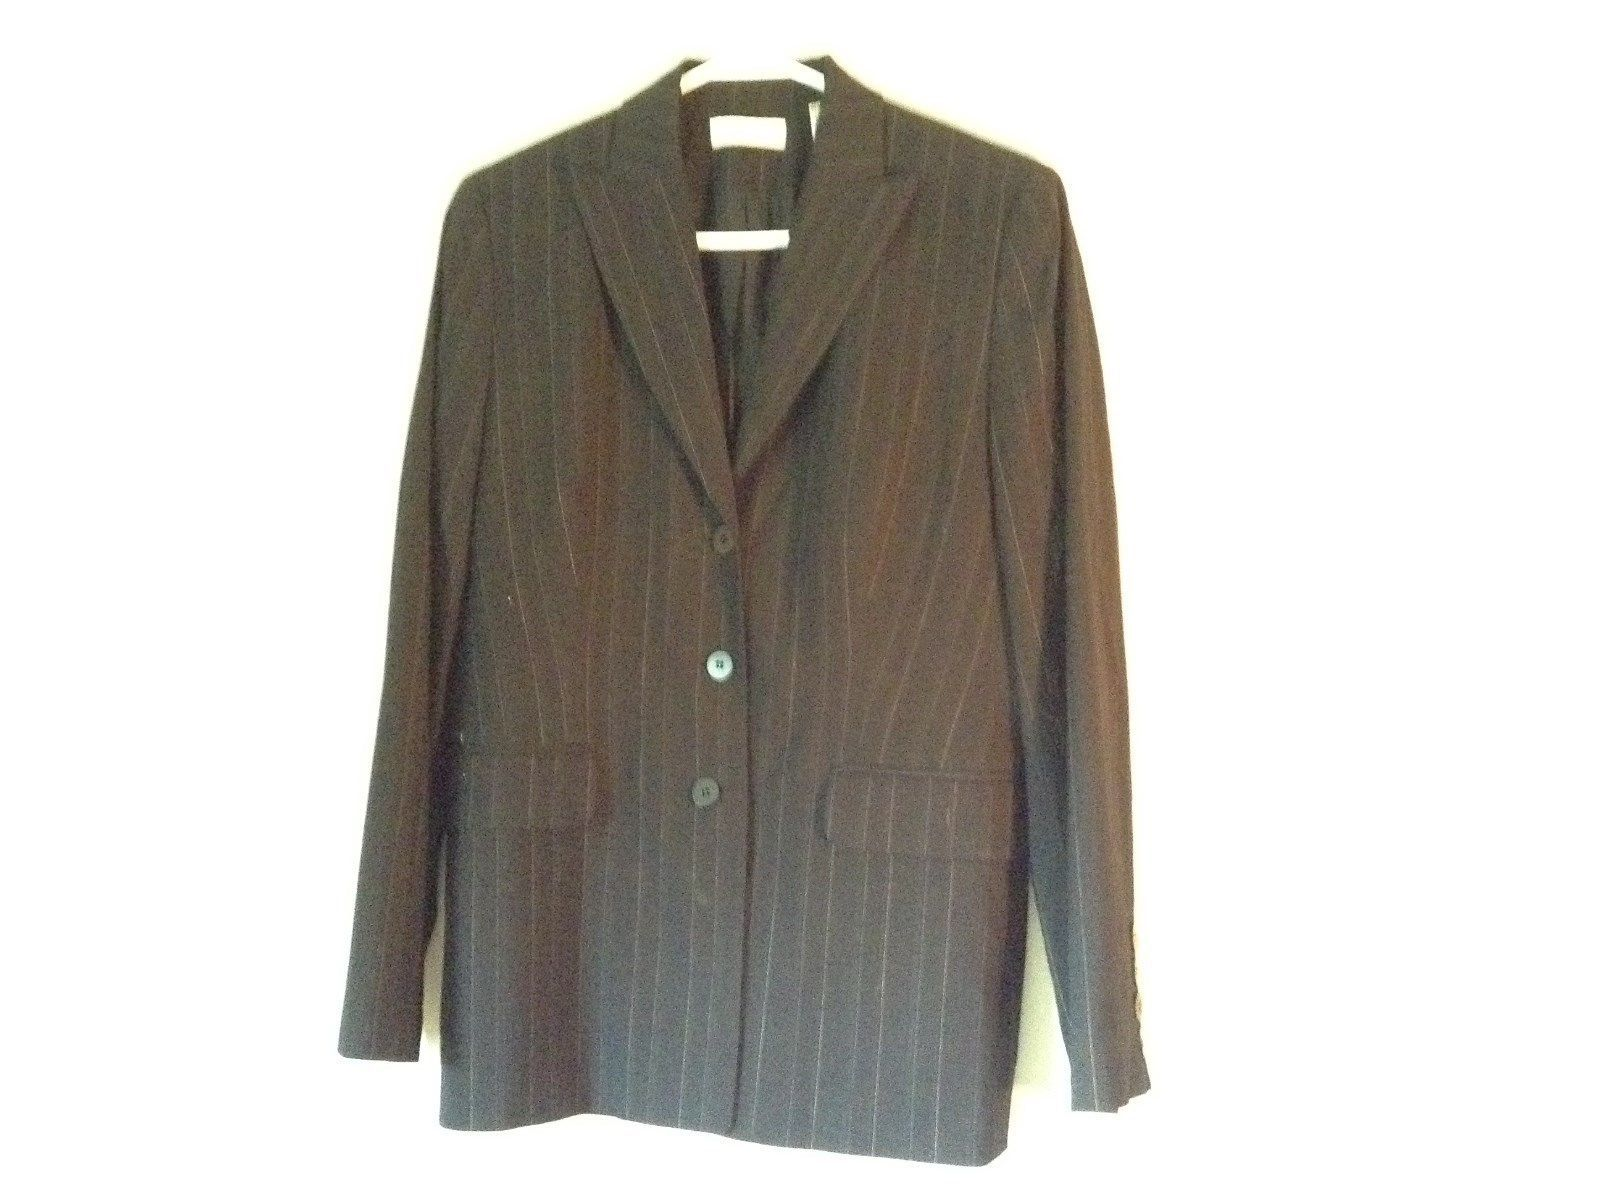 Black Striped Amanda Smith Blazer Shoulder Pads Buttons on Sleeves Size 8